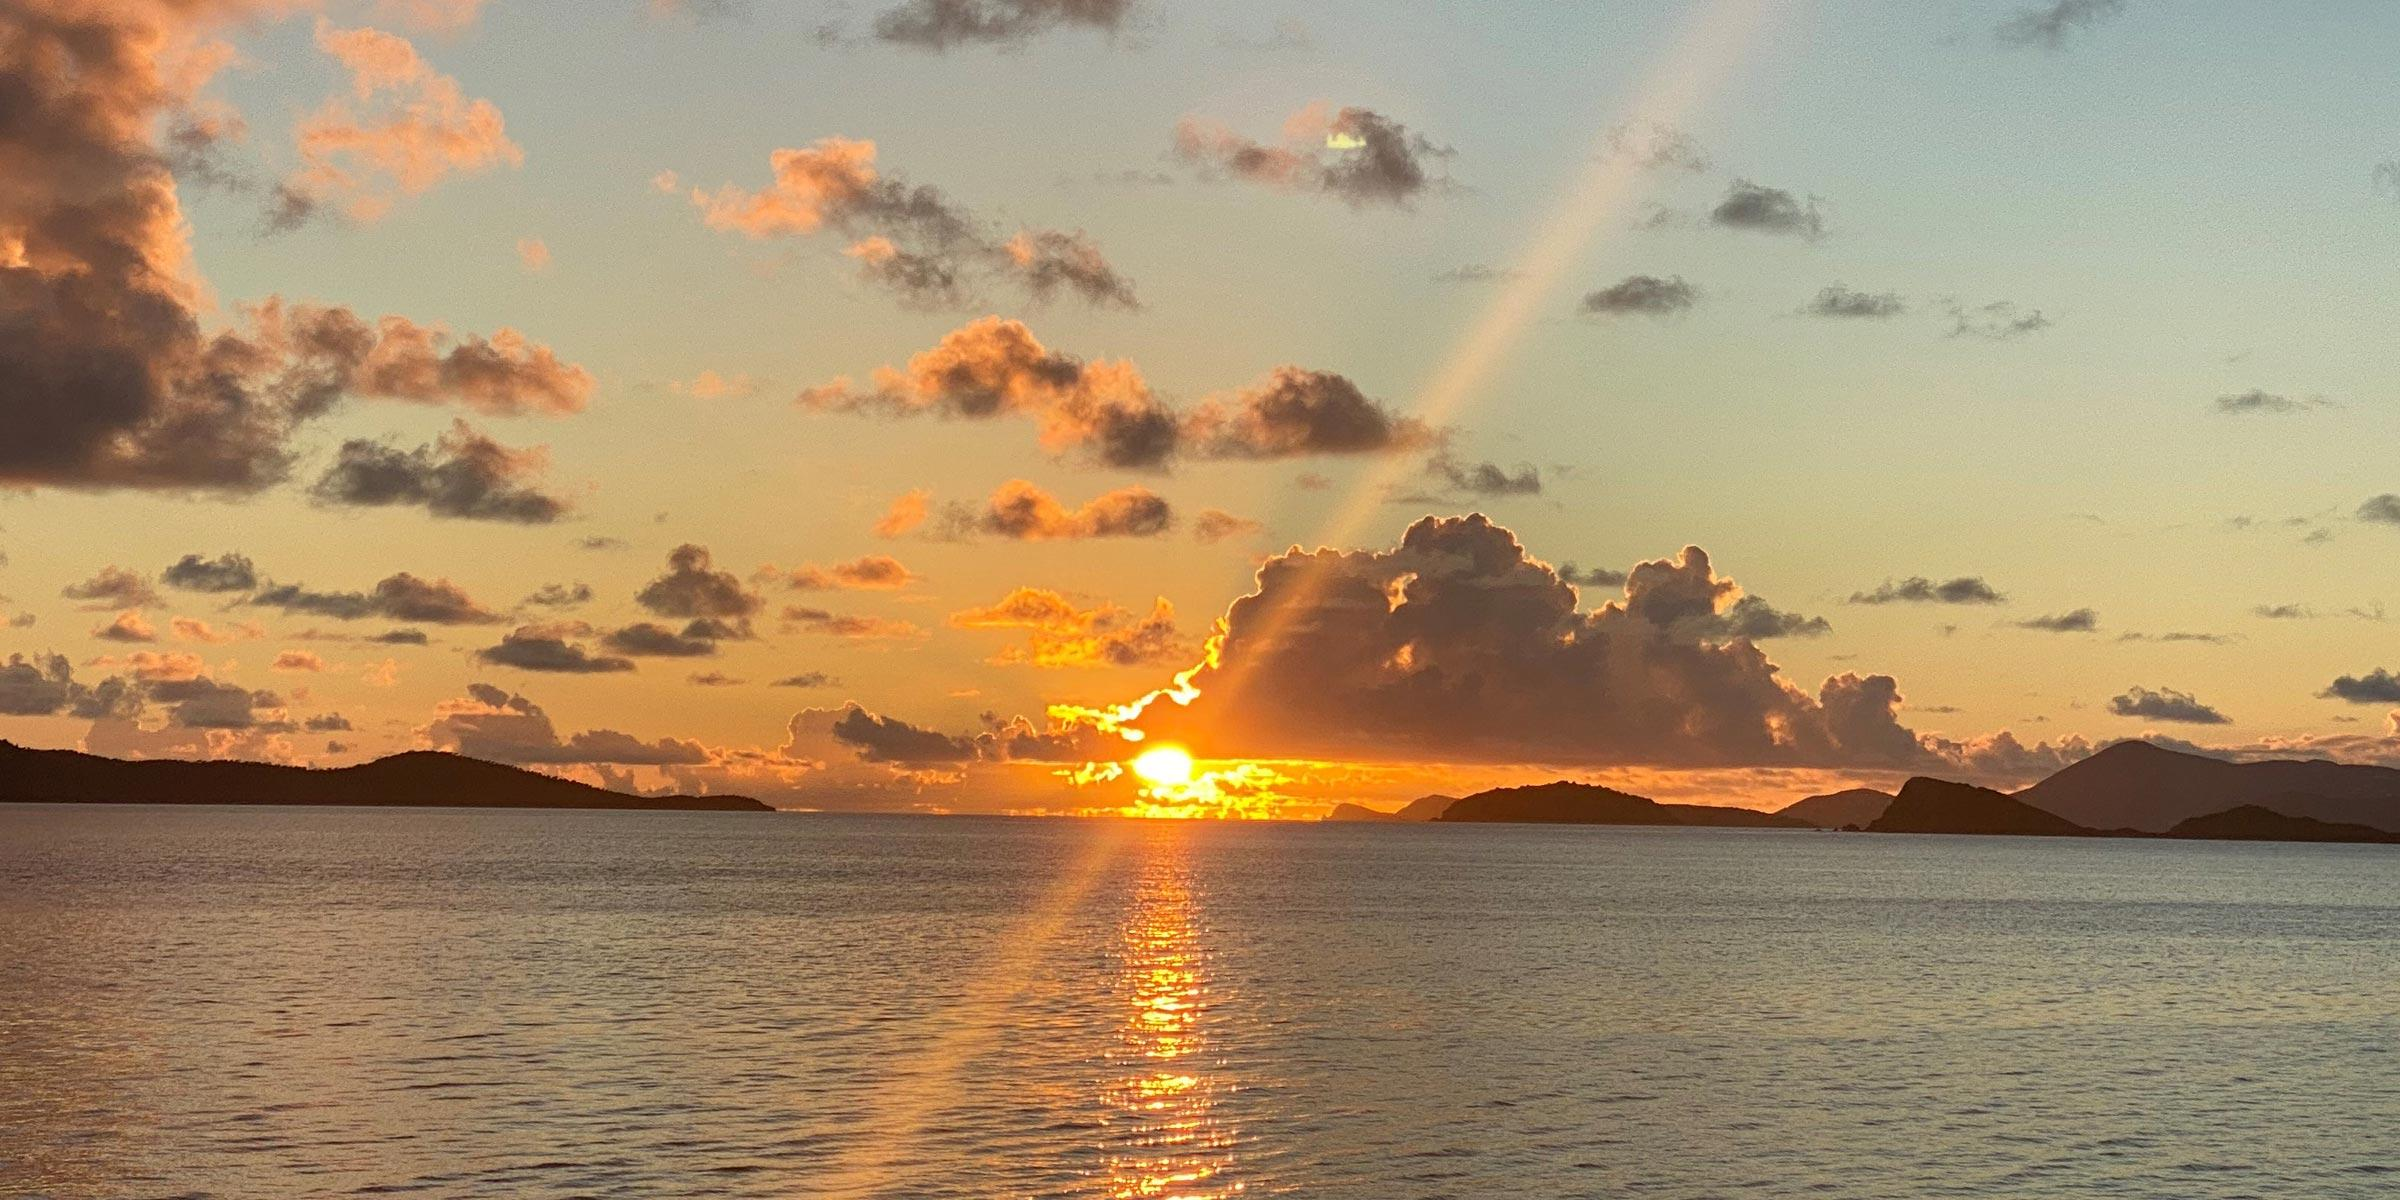 Sunset with clouds in the British Virgin Islands